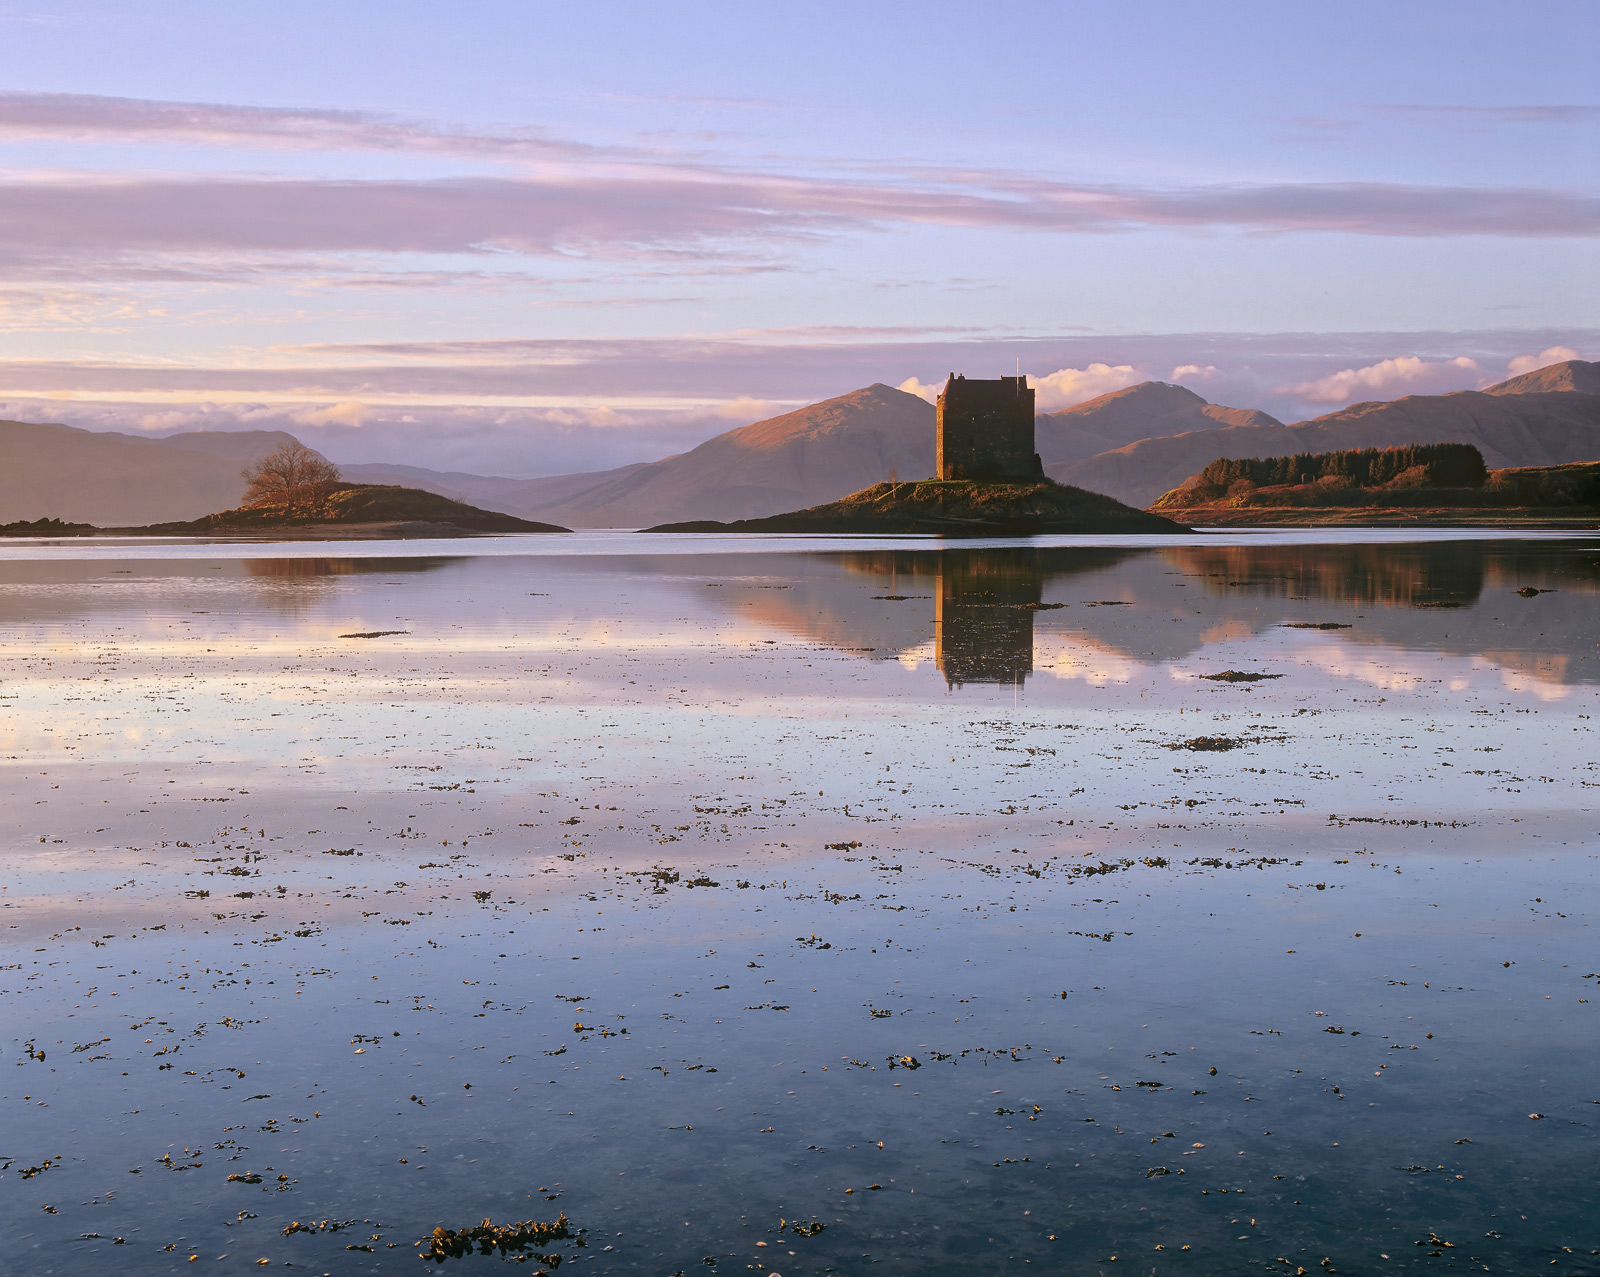 This delightfully situated castle on the Argyll coast is fabulously atmospheric especially at sunset when low light streams in...